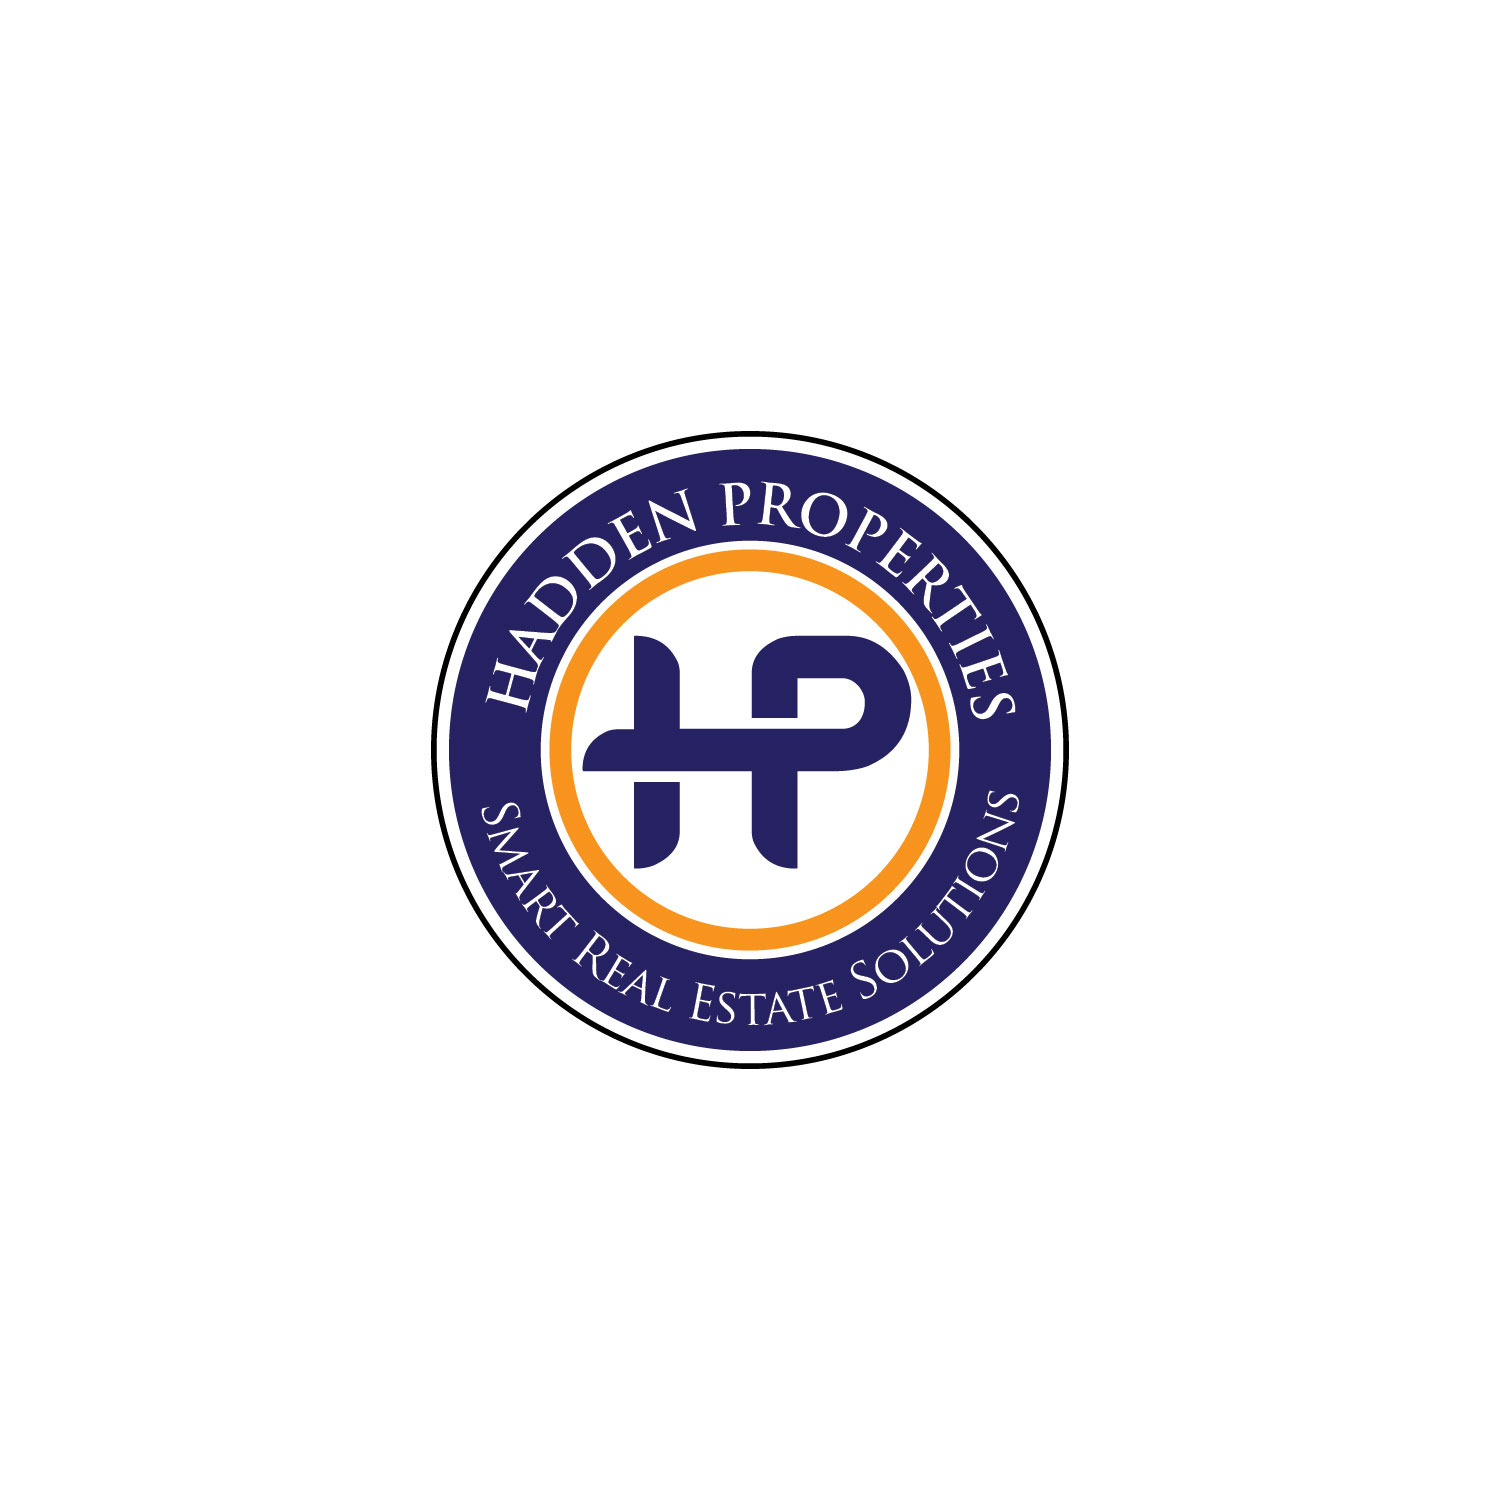 Logo Design by lagalag - Entry No. 186 in the Logo Design Contest Artistic Logo Design for Hadden Properties.